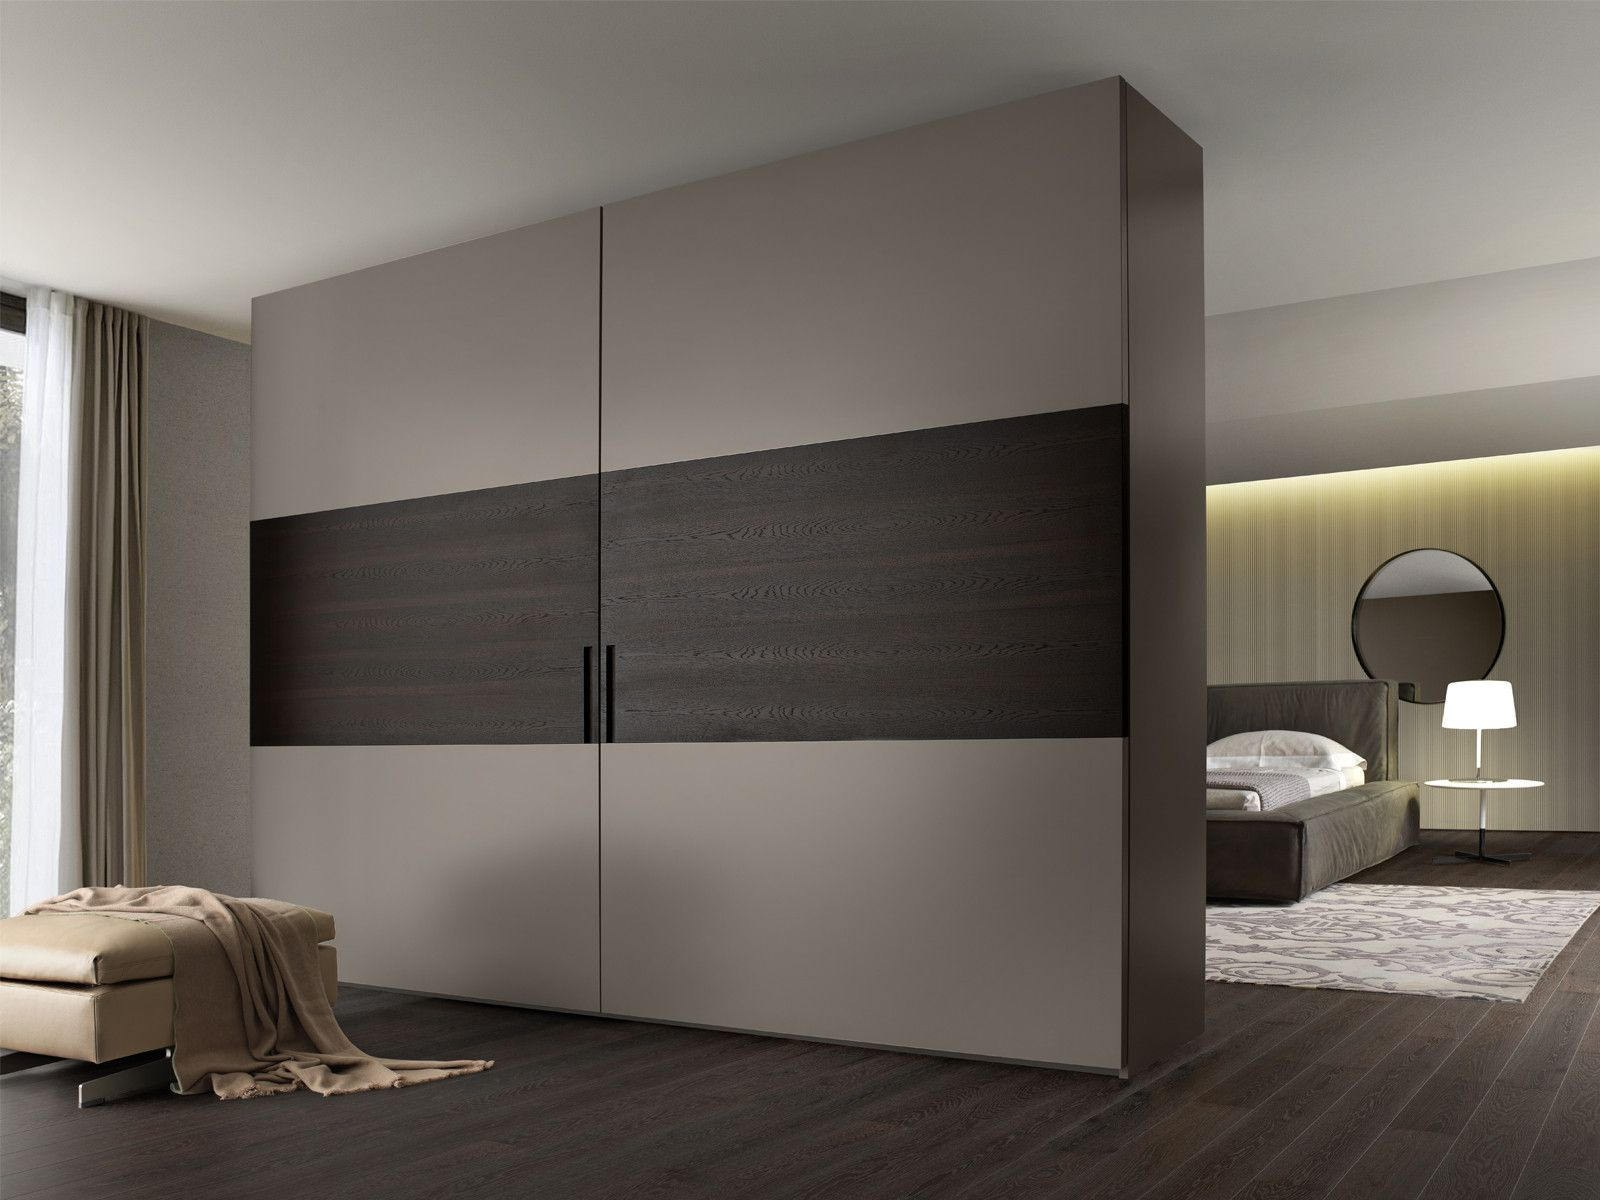 Bedroom Designer Free Italian Free Standing Integrated Contemporary Wardrobes